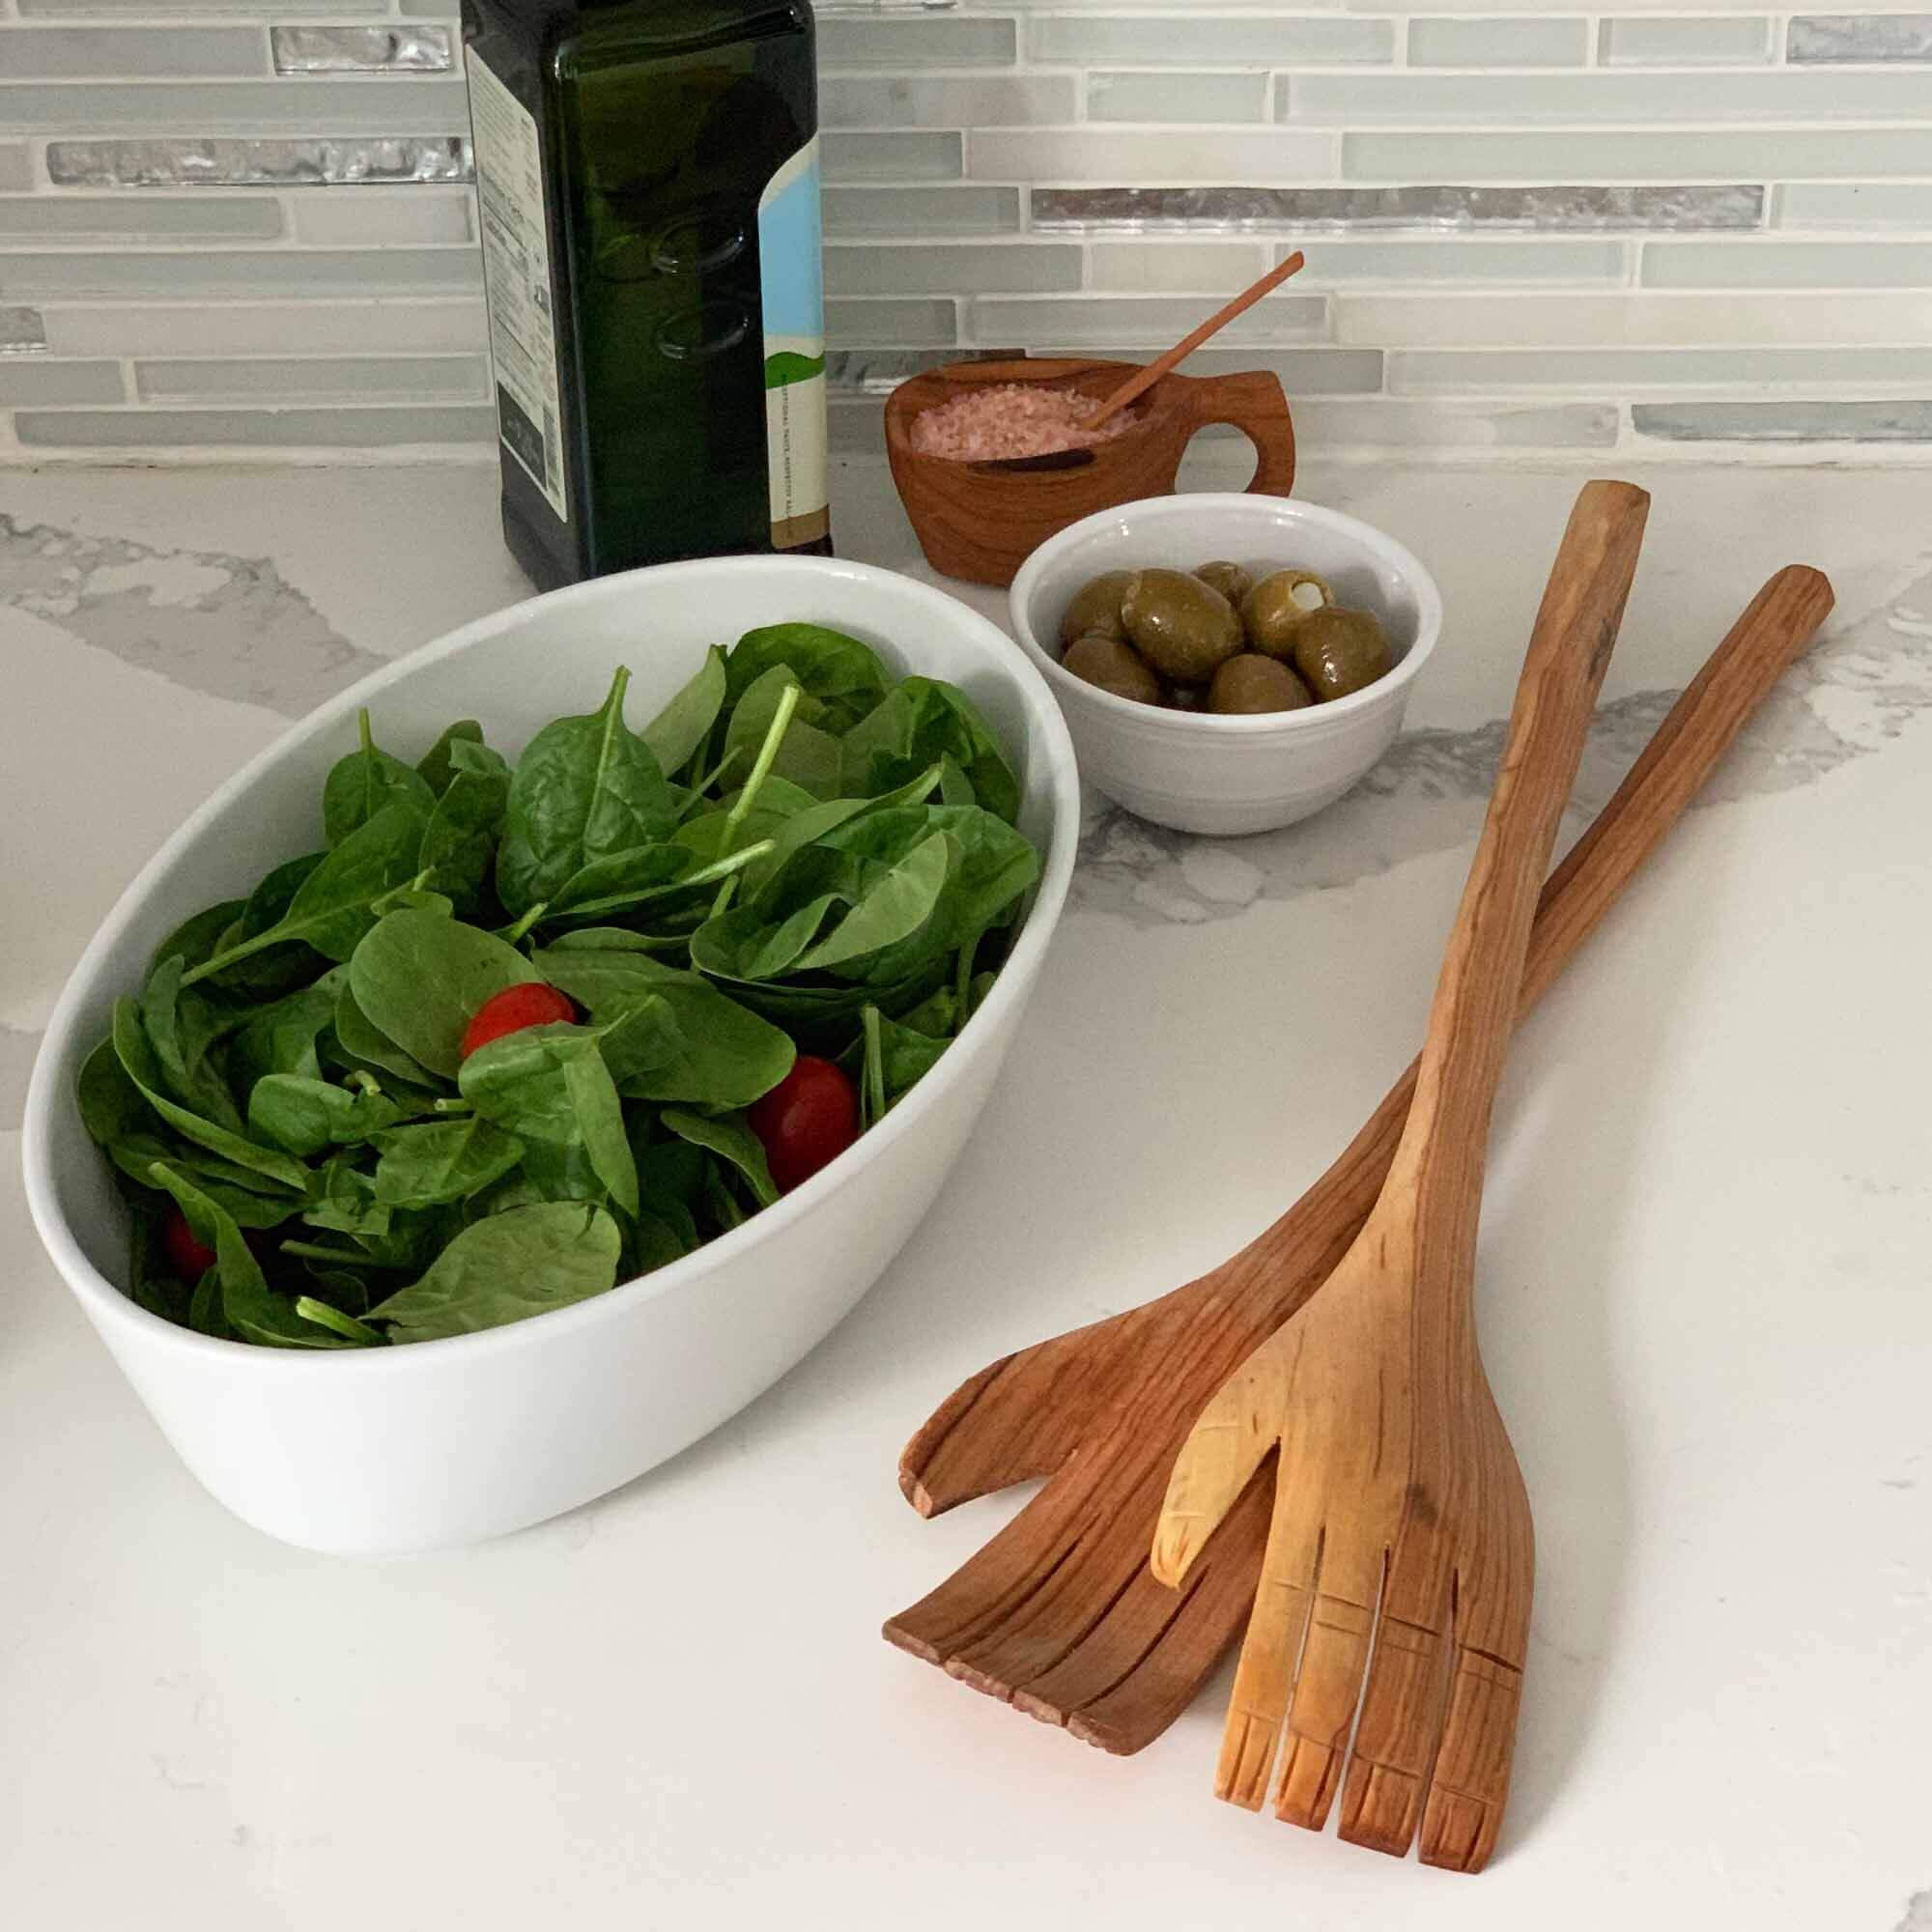 Jedando Handicrafts Olive Wood Giant Hands Salad Servers Jungle Pillows